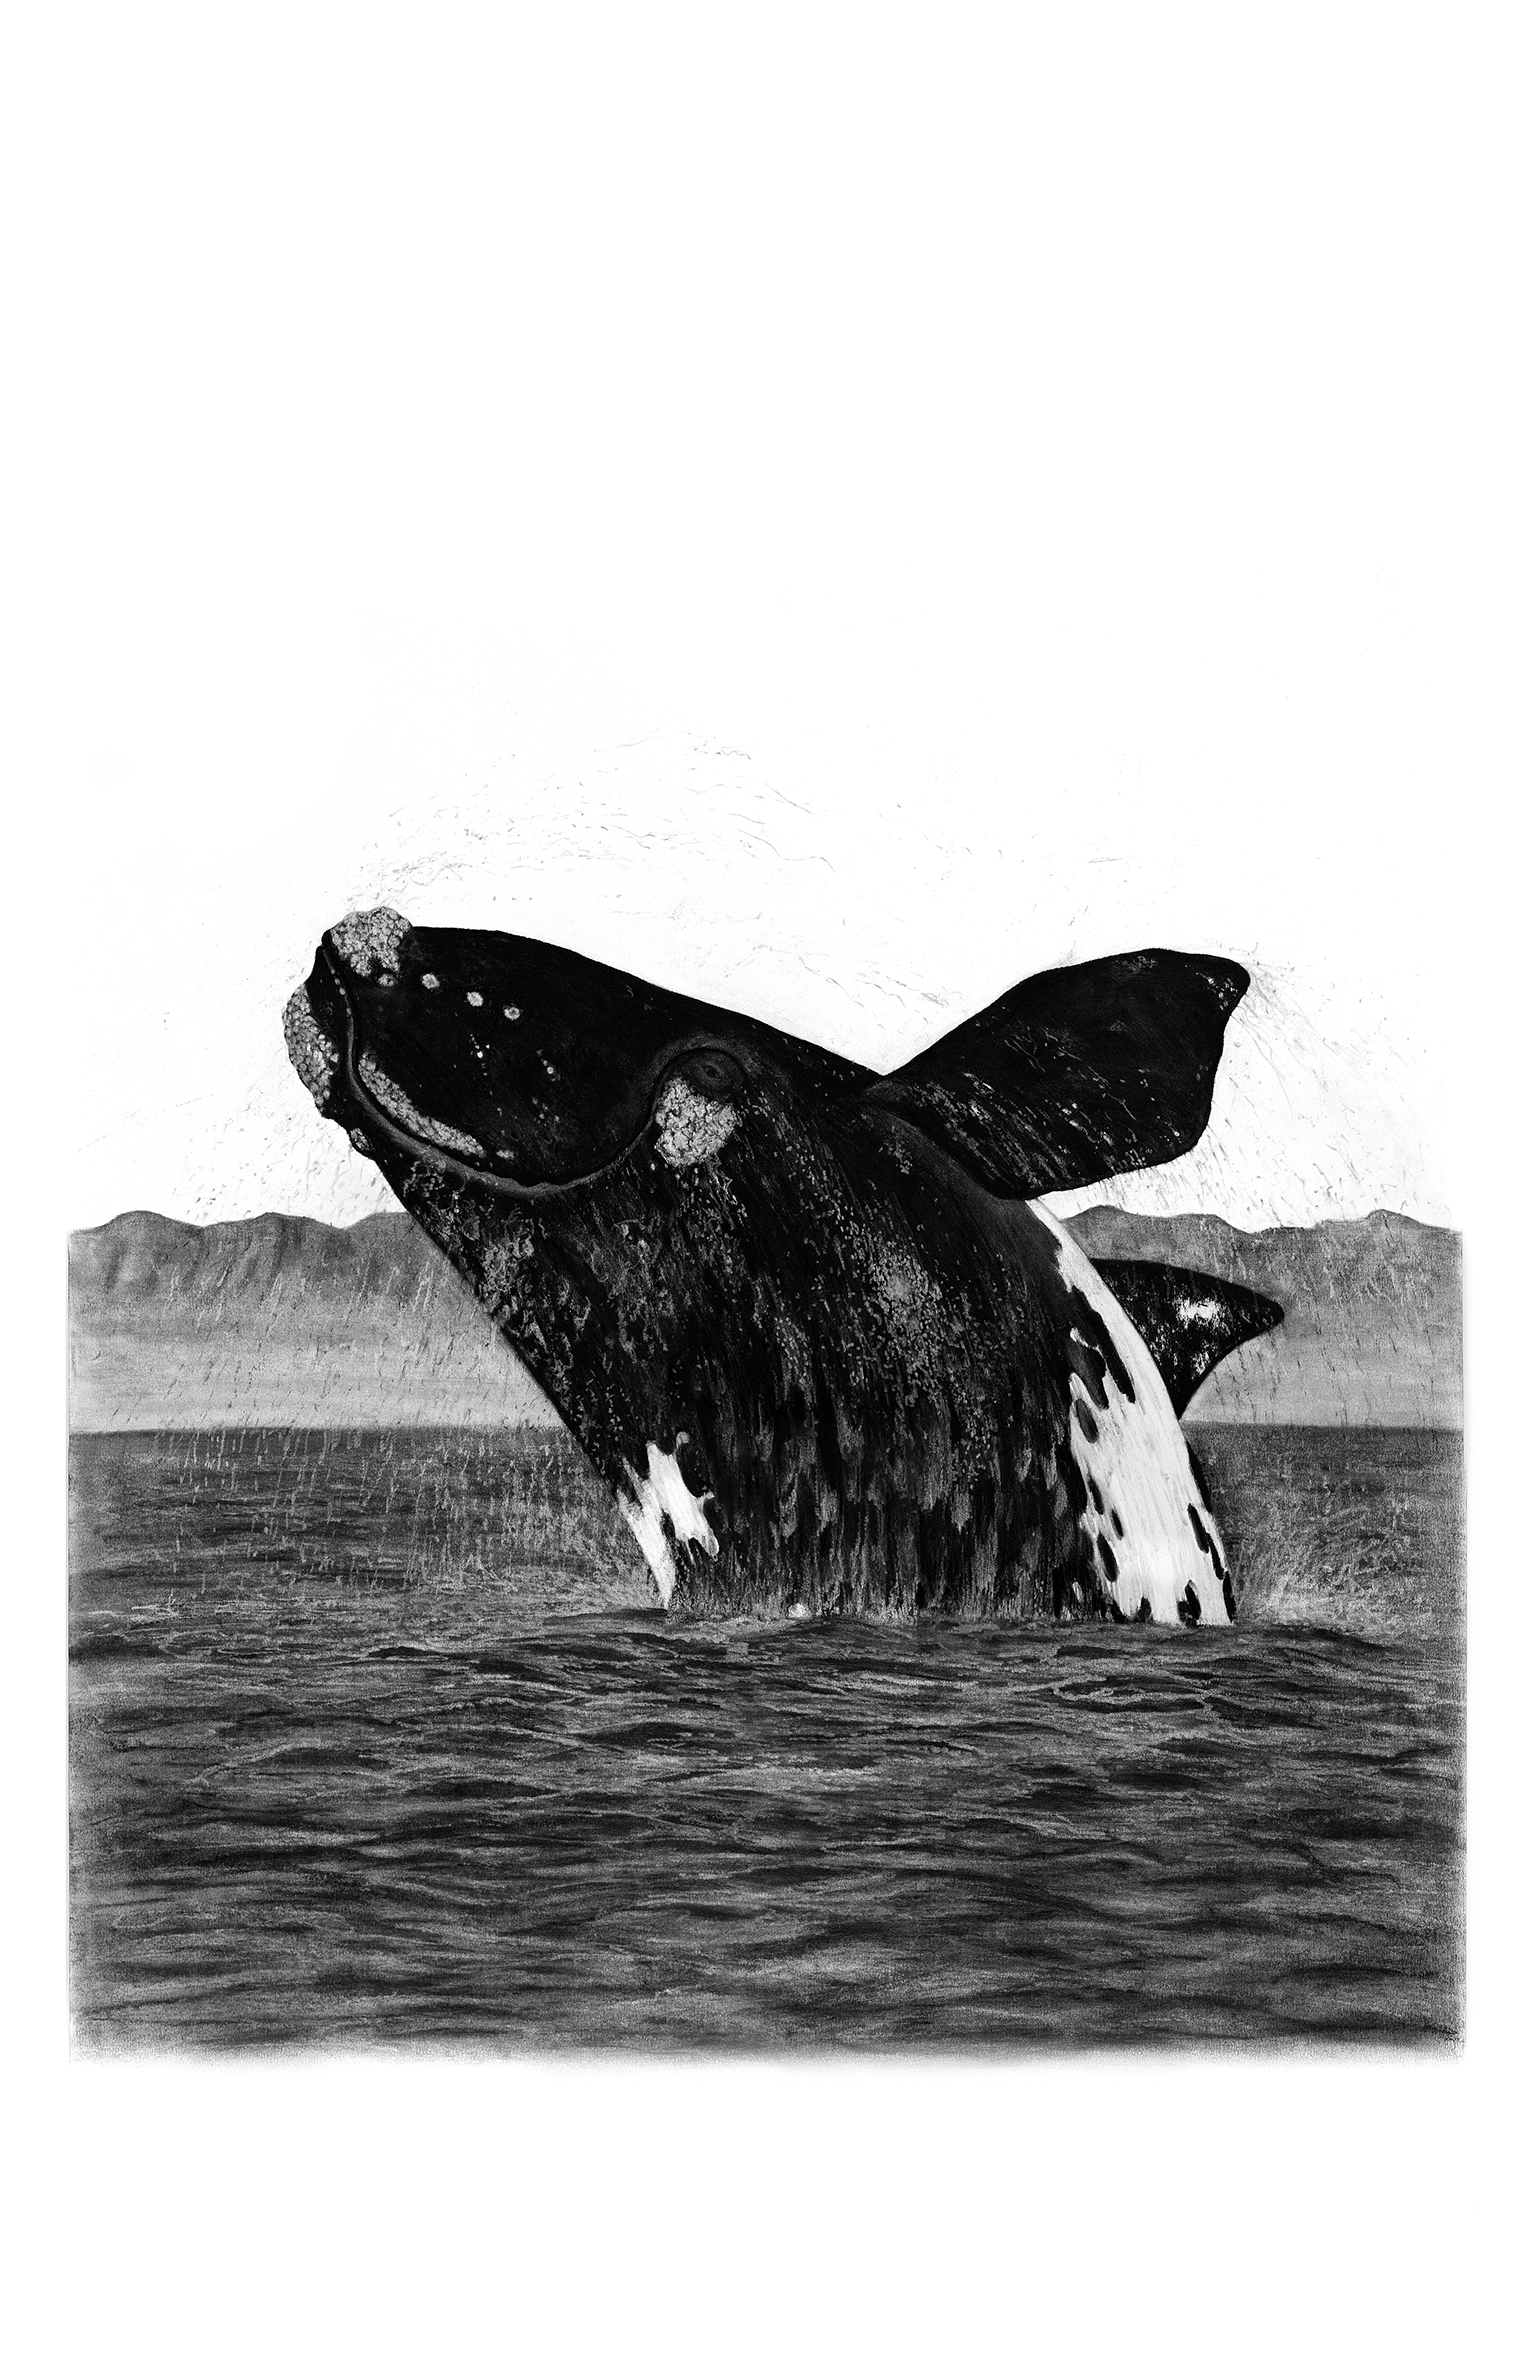 Drawn whale realistic Whale art Whale Drawings of